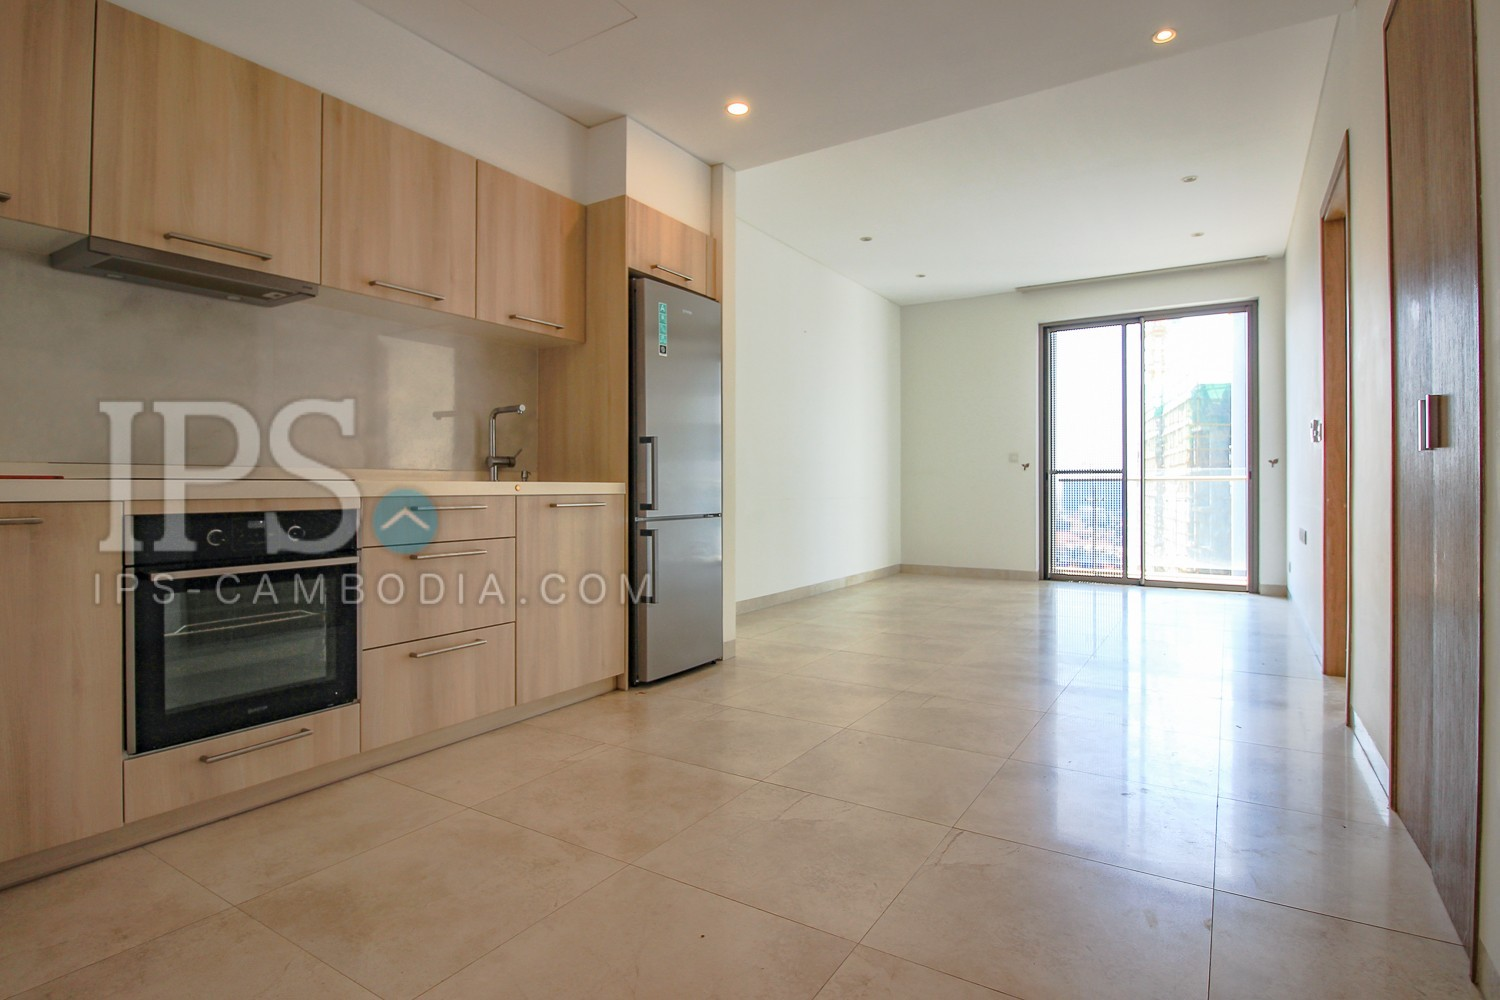 1 Bedroom Apartment For Sale- Embassy Residences